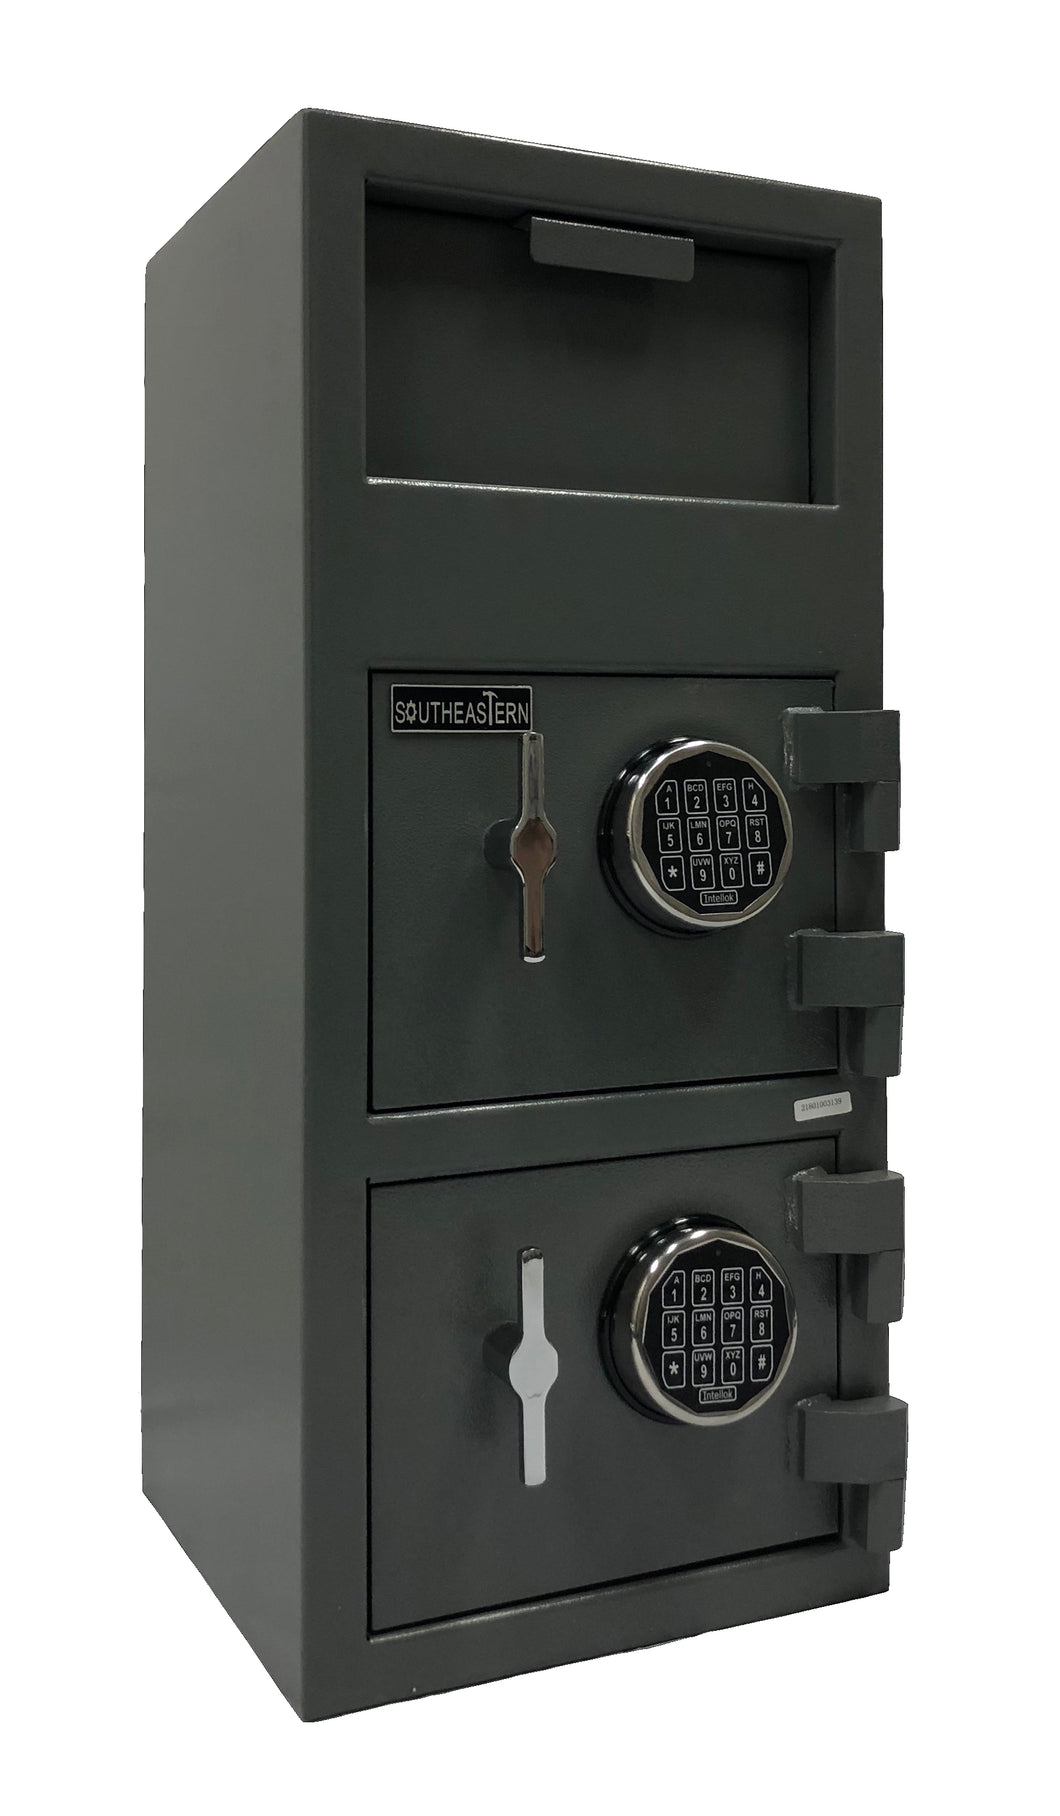 SOUTHEASTERN F3214EE Double Door Cash Drop Depository Safe with UL Listed Digital Lock